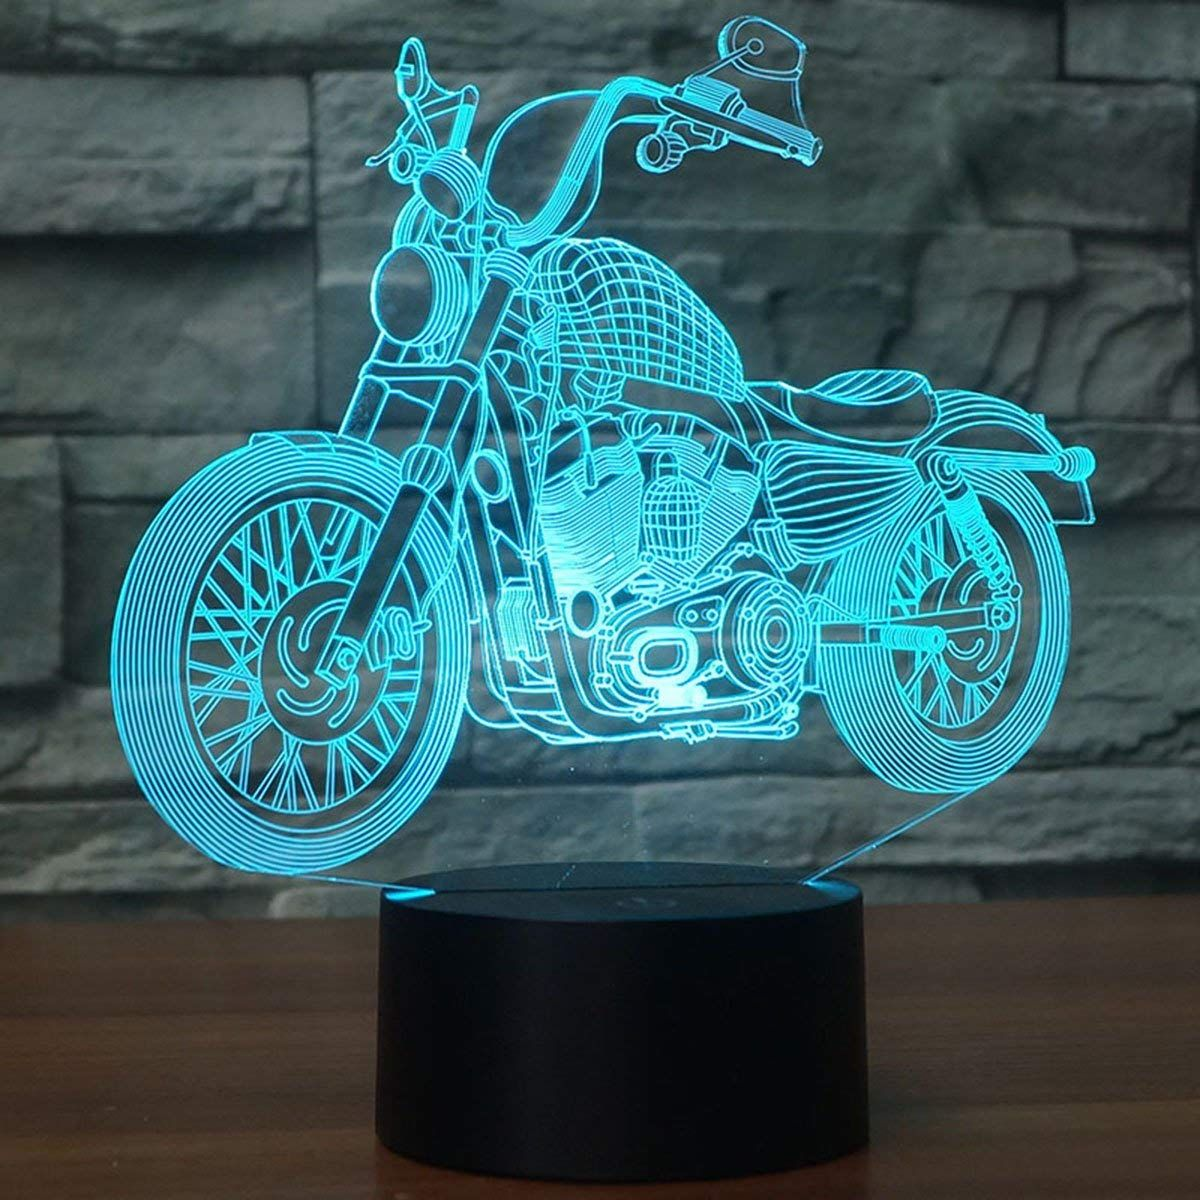 Usb Led 3d Lamp Led Motorcycle Model 3d Sensor Night Light Atmosphere Lamp As Bedroom Decoration Amazon Com